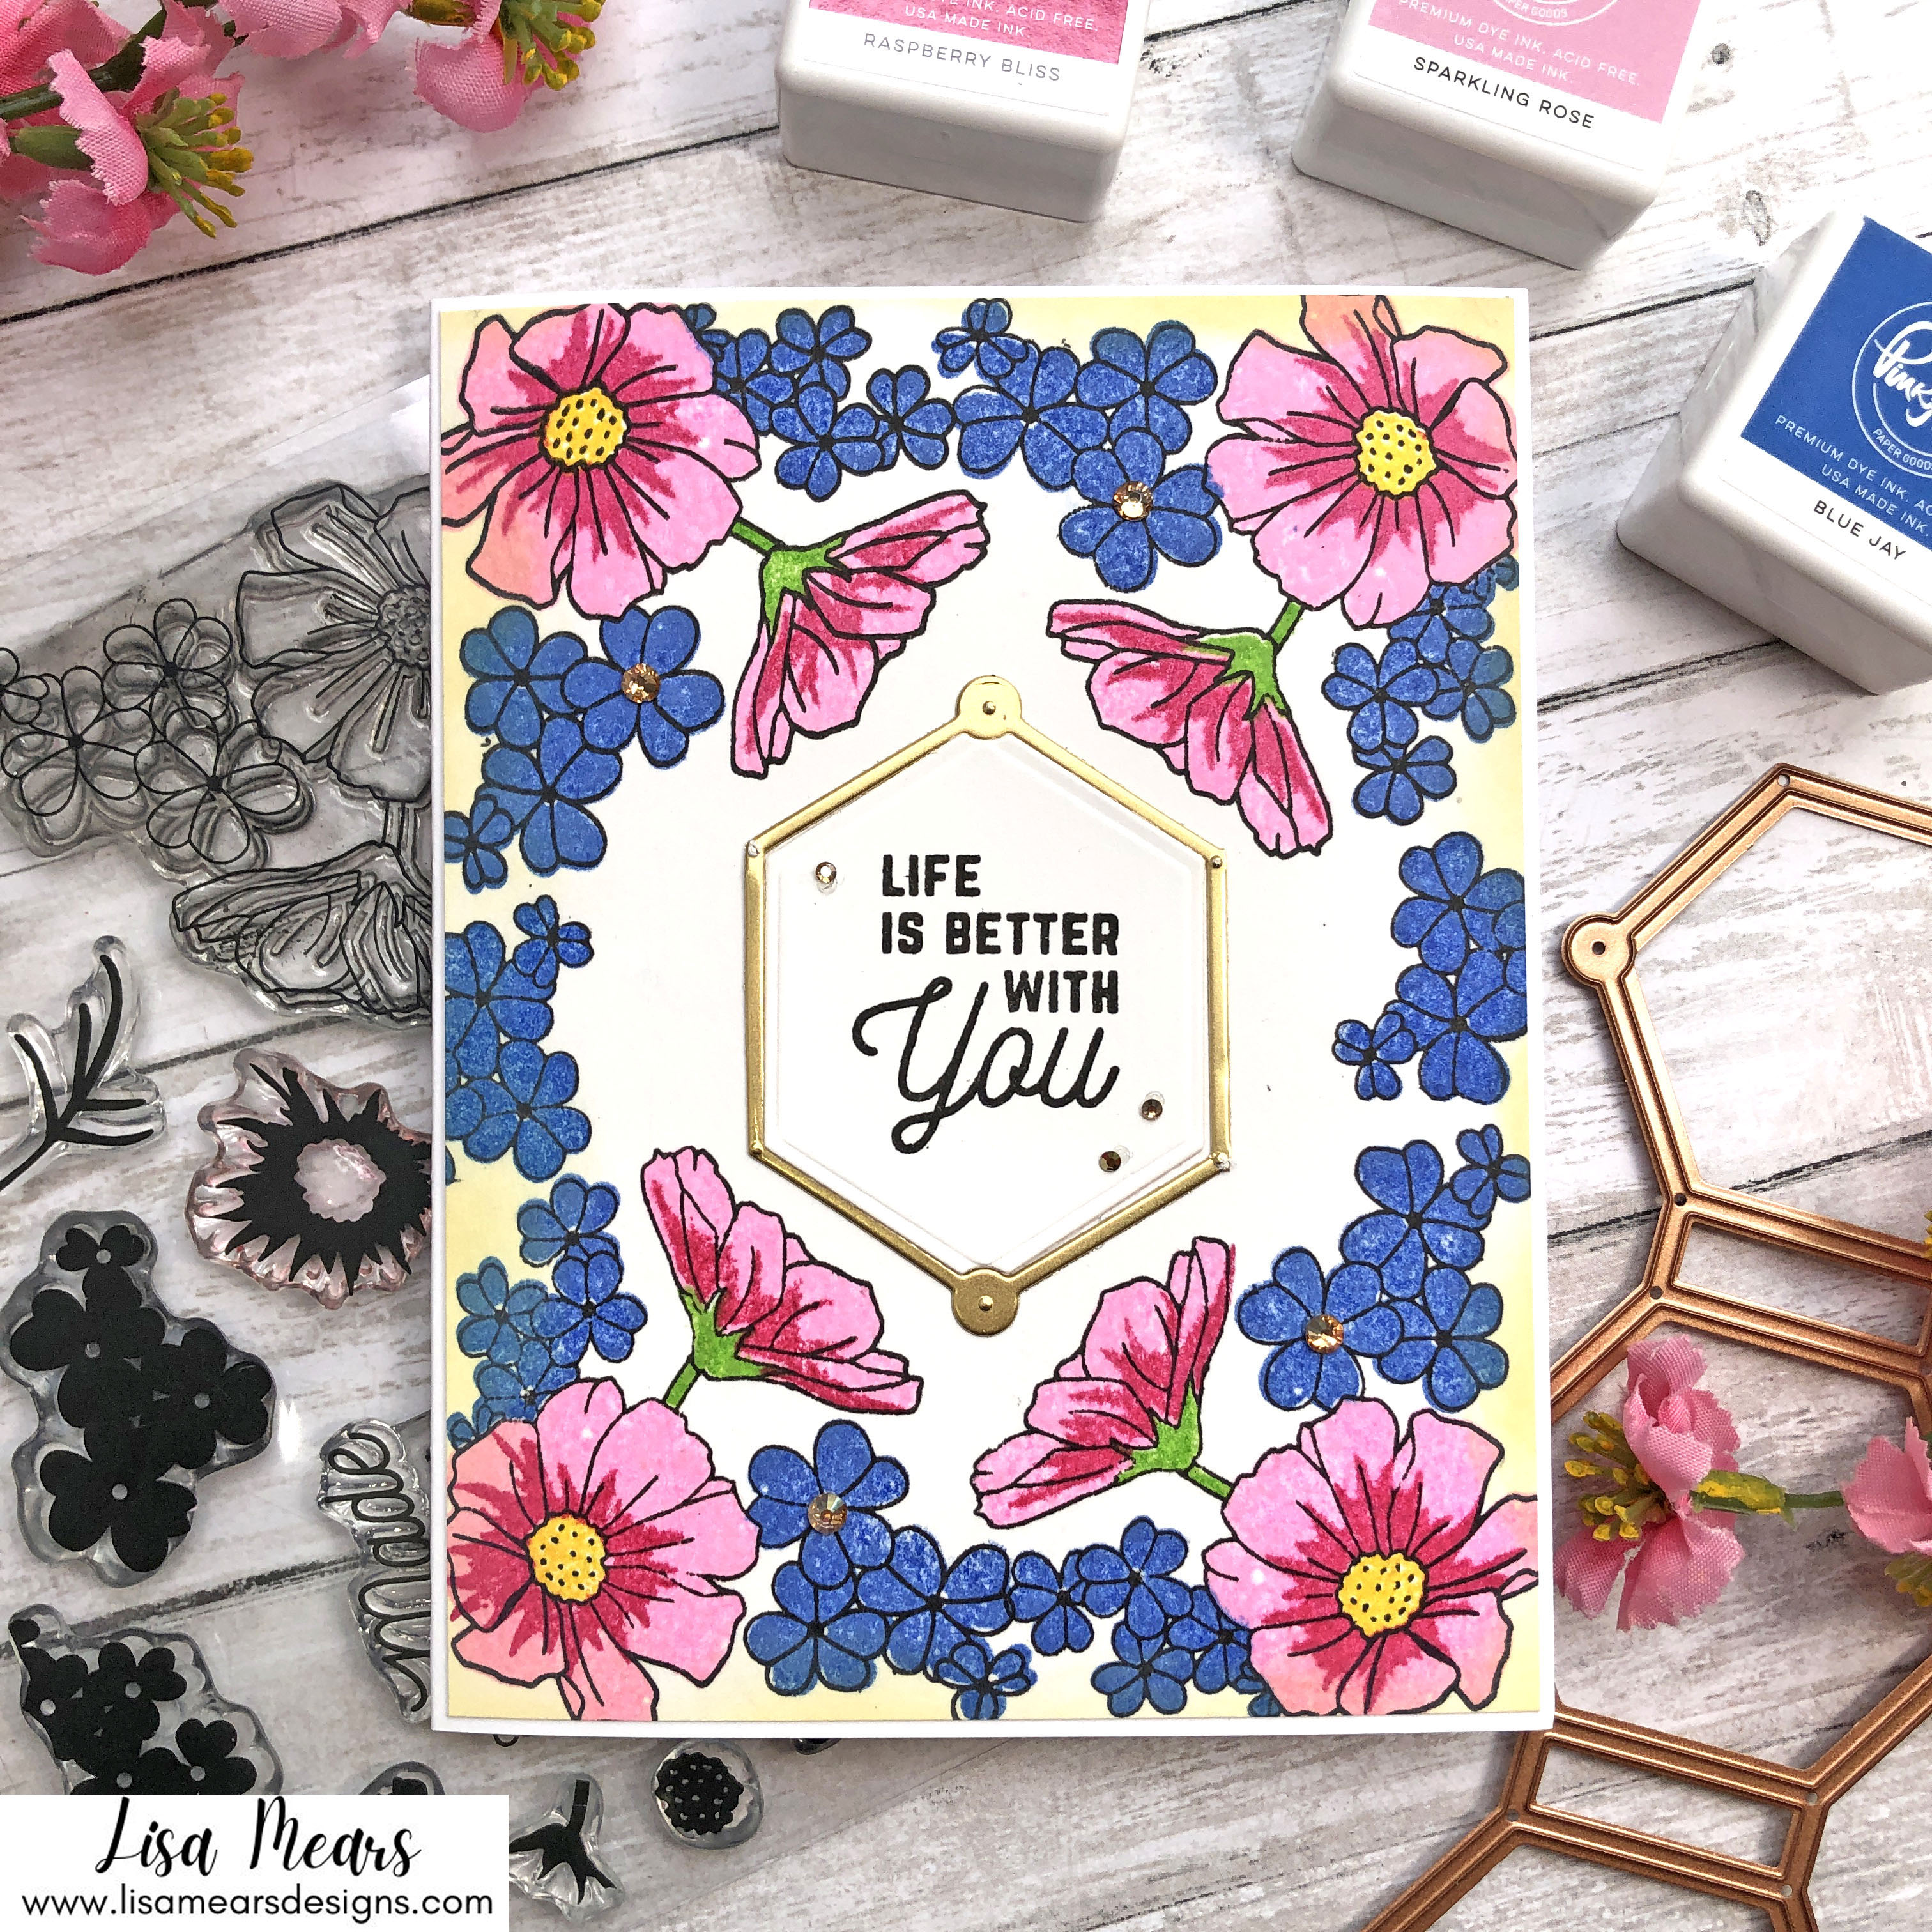 Spellbinders Small Die of the Month and Clear Stamp of the Month August 2021